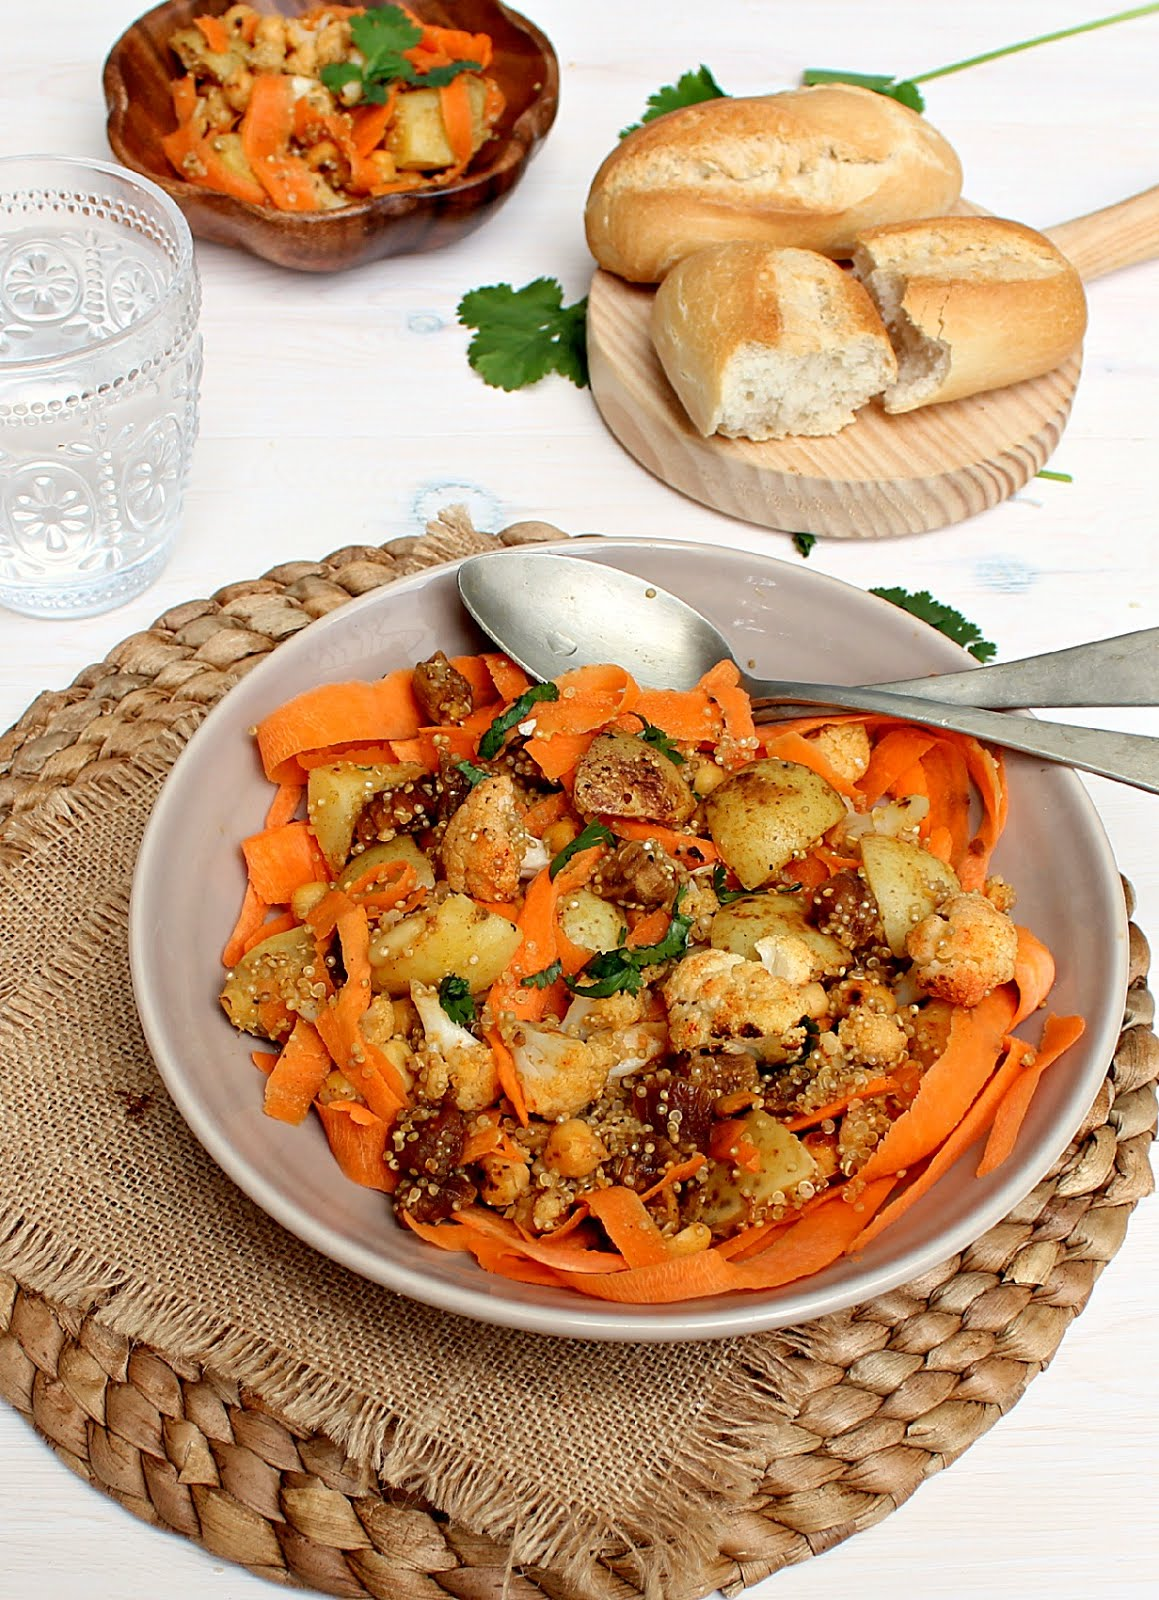 Moroccan Roasted Carrot And Chickpea Quinoa Salad Recipes — Dishmaps